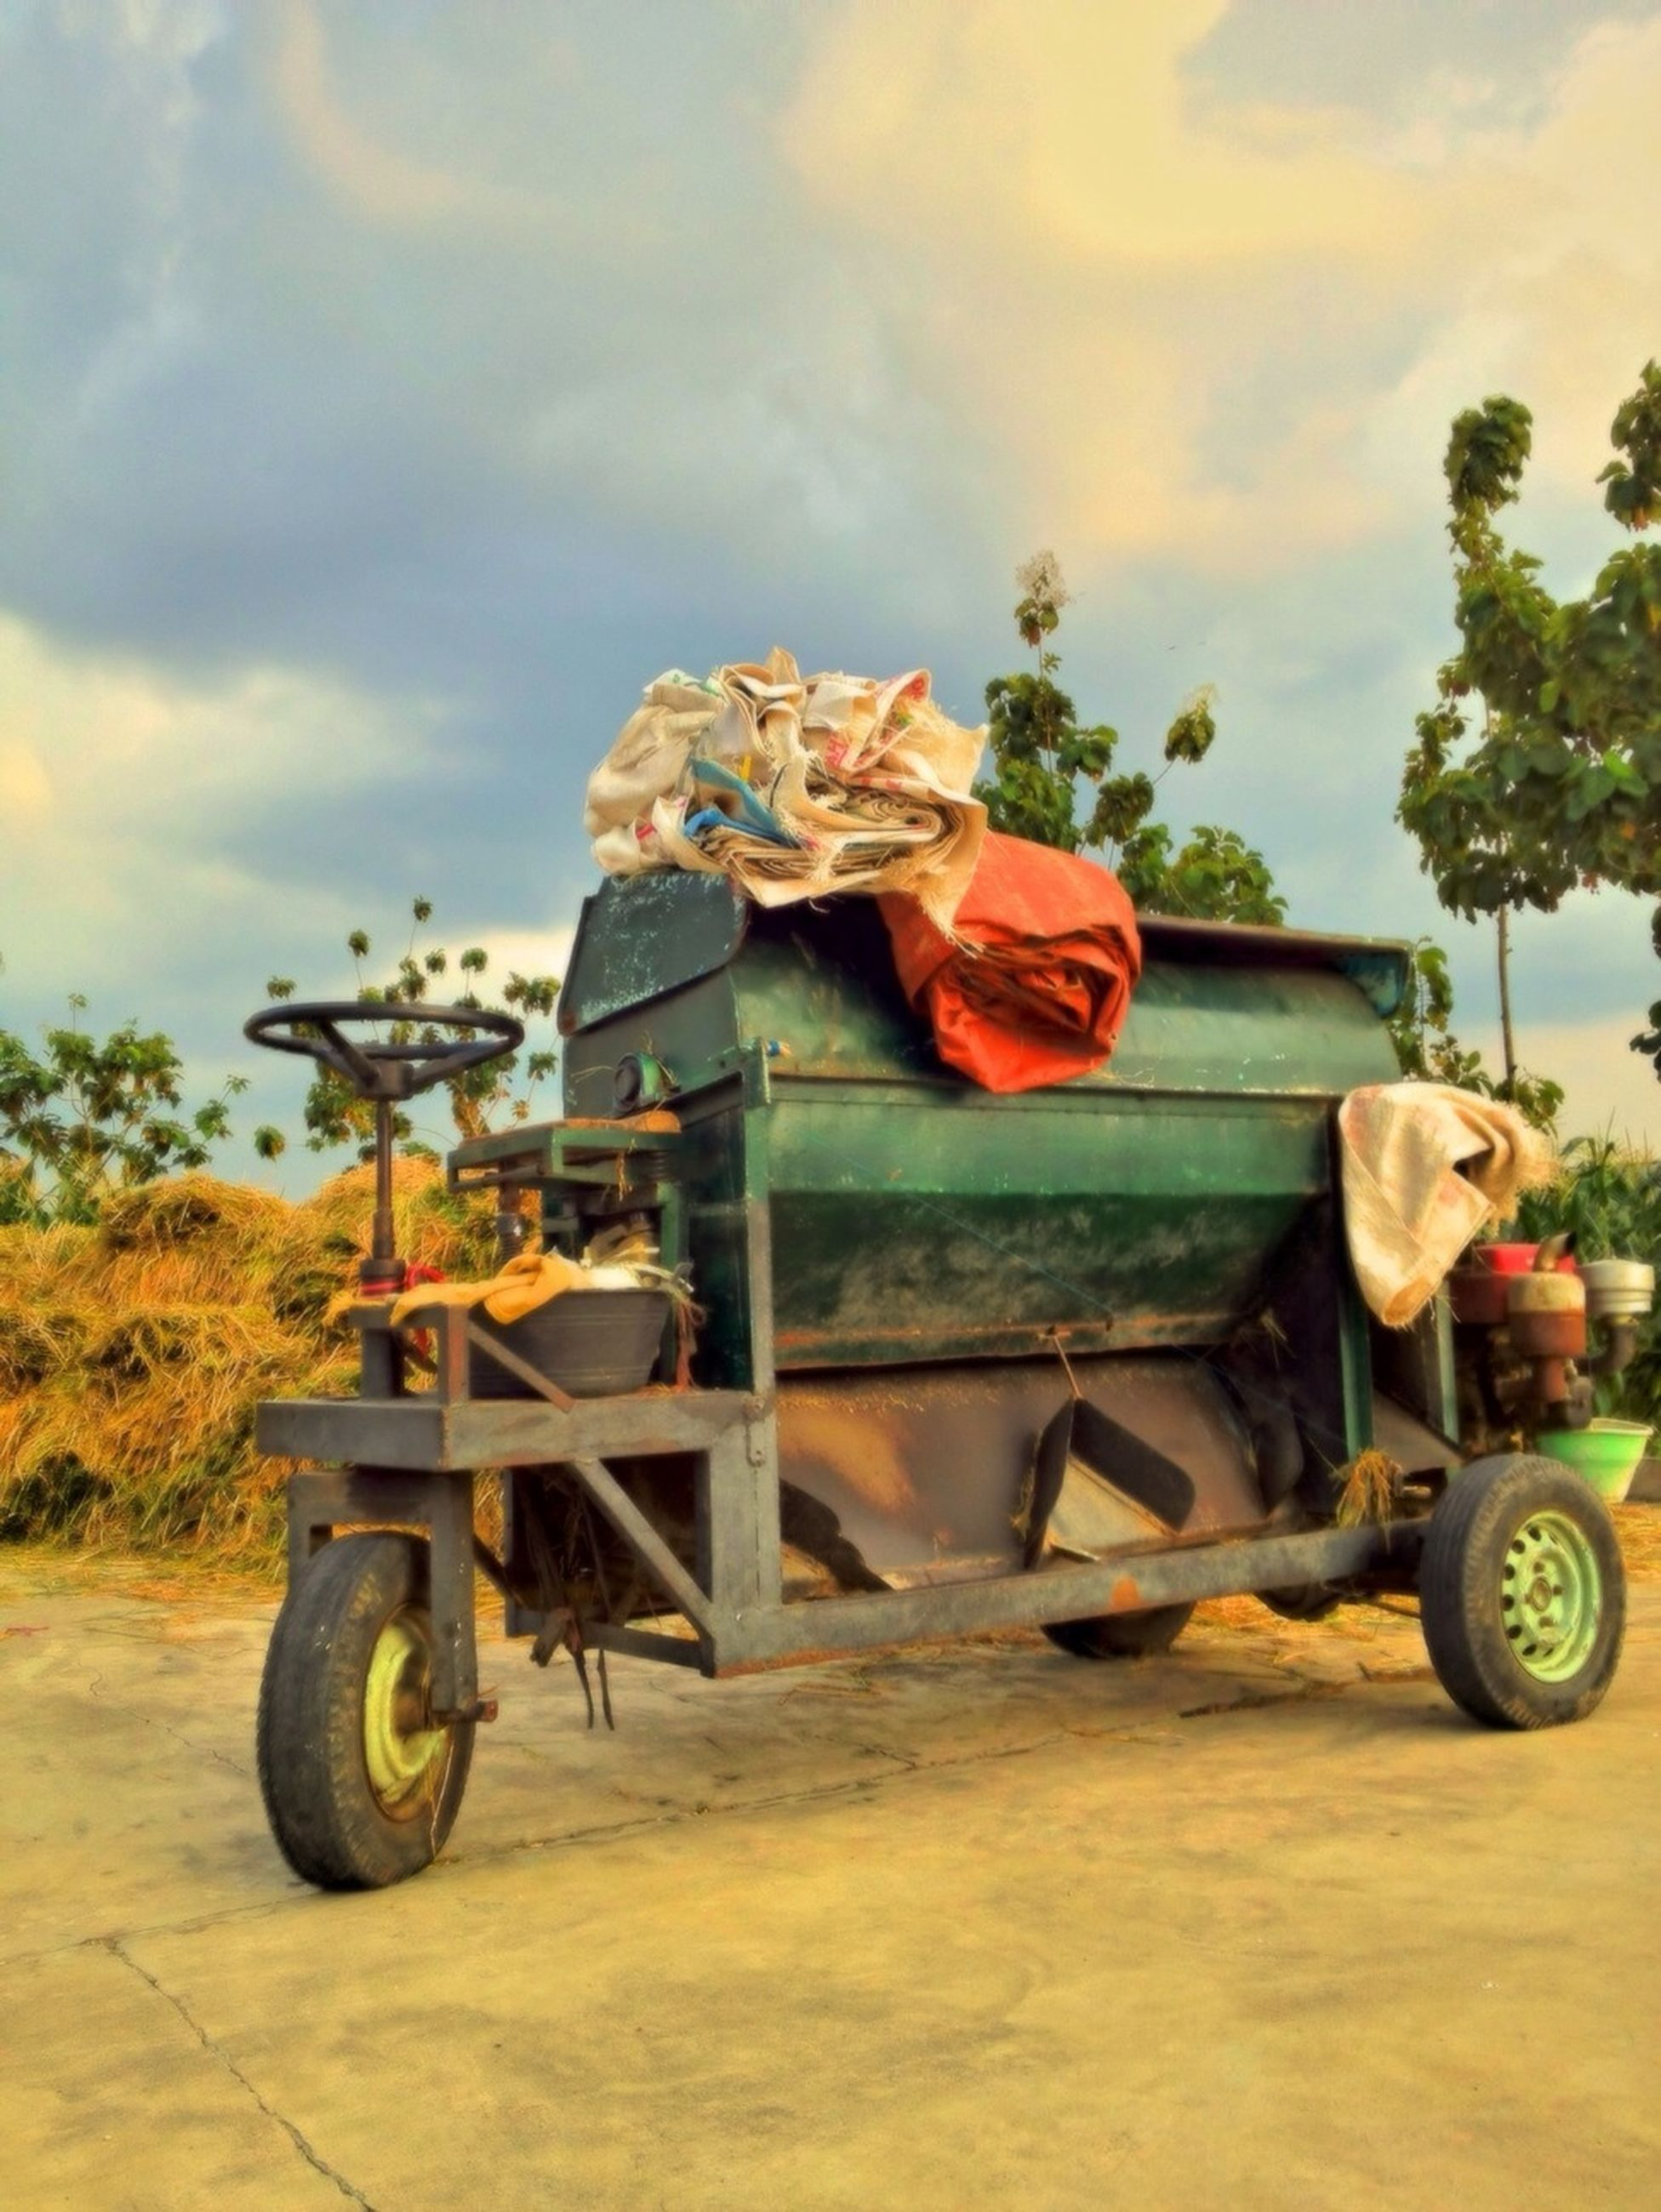 sky, mode of transport, land vehicle, cloud - sky, transportation, cloud, tractor, day, outdoors, tree, sunlight, toy, sand, cloudy, abandoned, stationary, childhood, cart